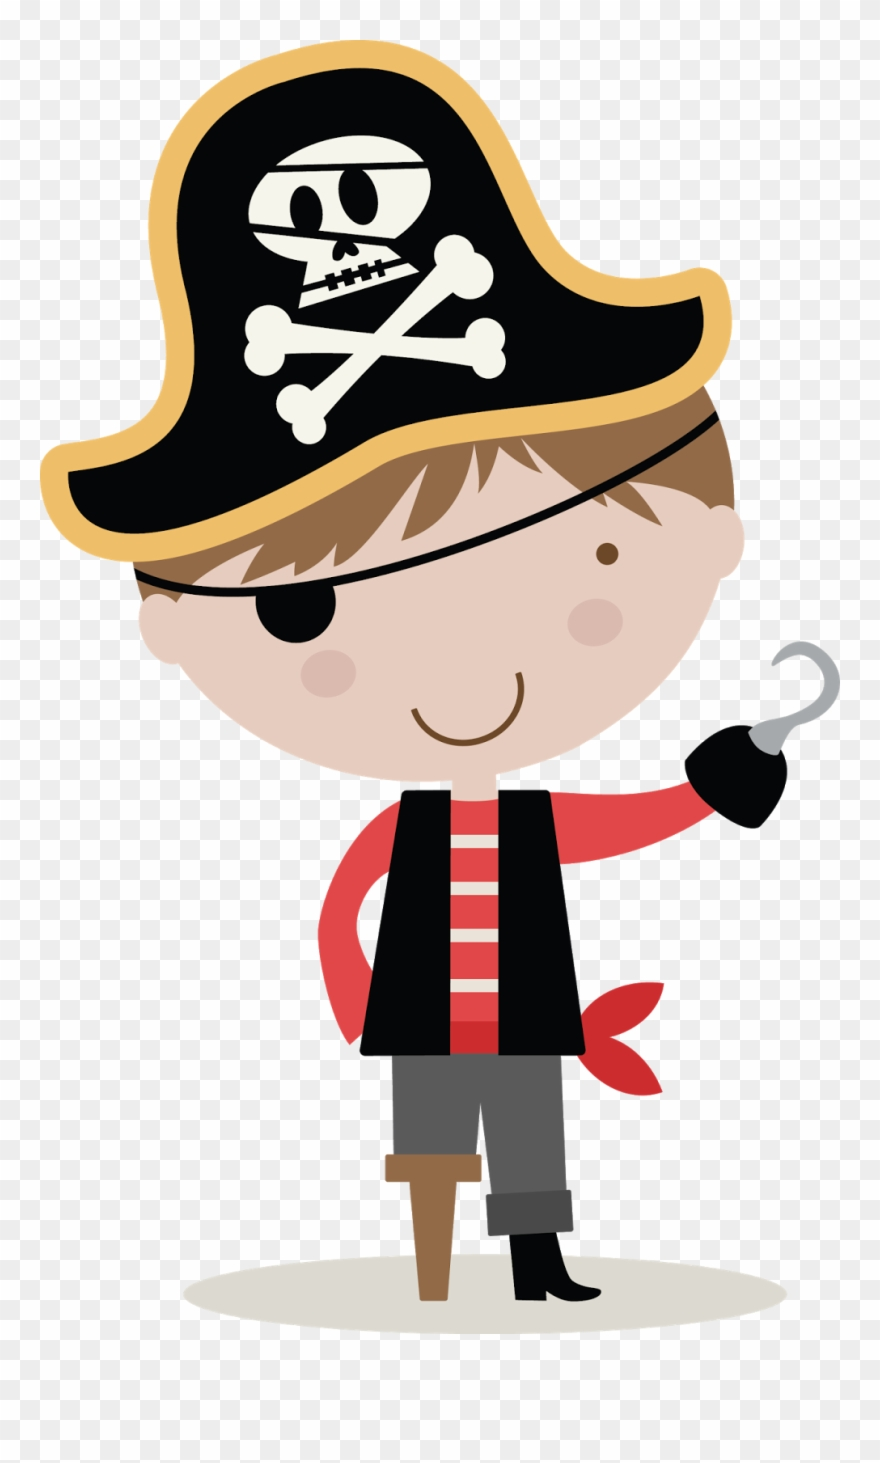 Security Kid Pirate Pictures Pirates Kids Clip Pirate Clipart Png Transparent Png 75409 Pinclipart